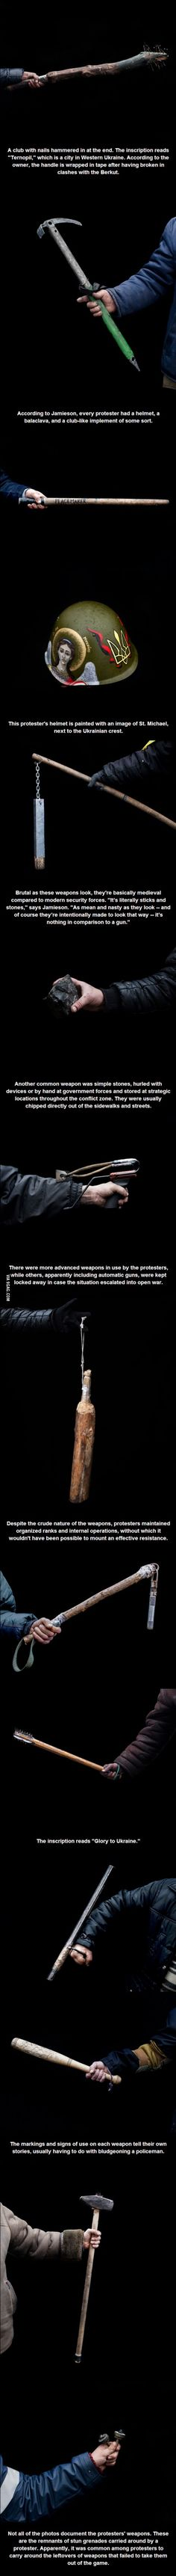 The Brutal Weapons of the Ukrainian Revolution